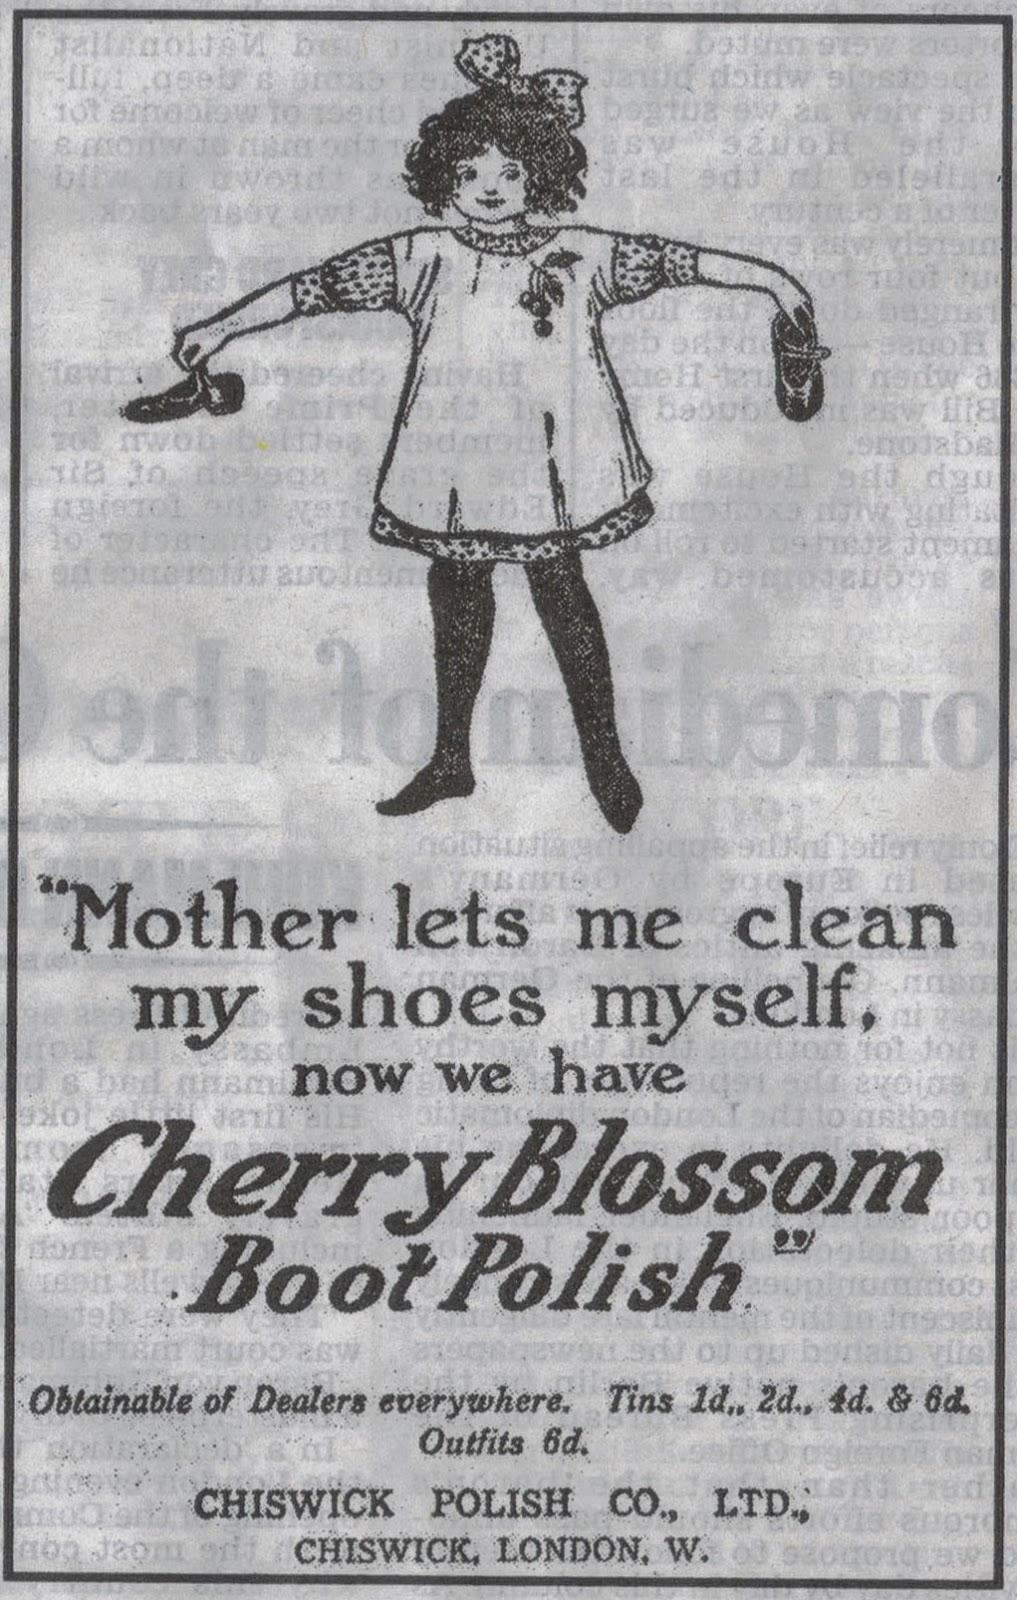 1914 advert for Cherry Blossom shoe polish